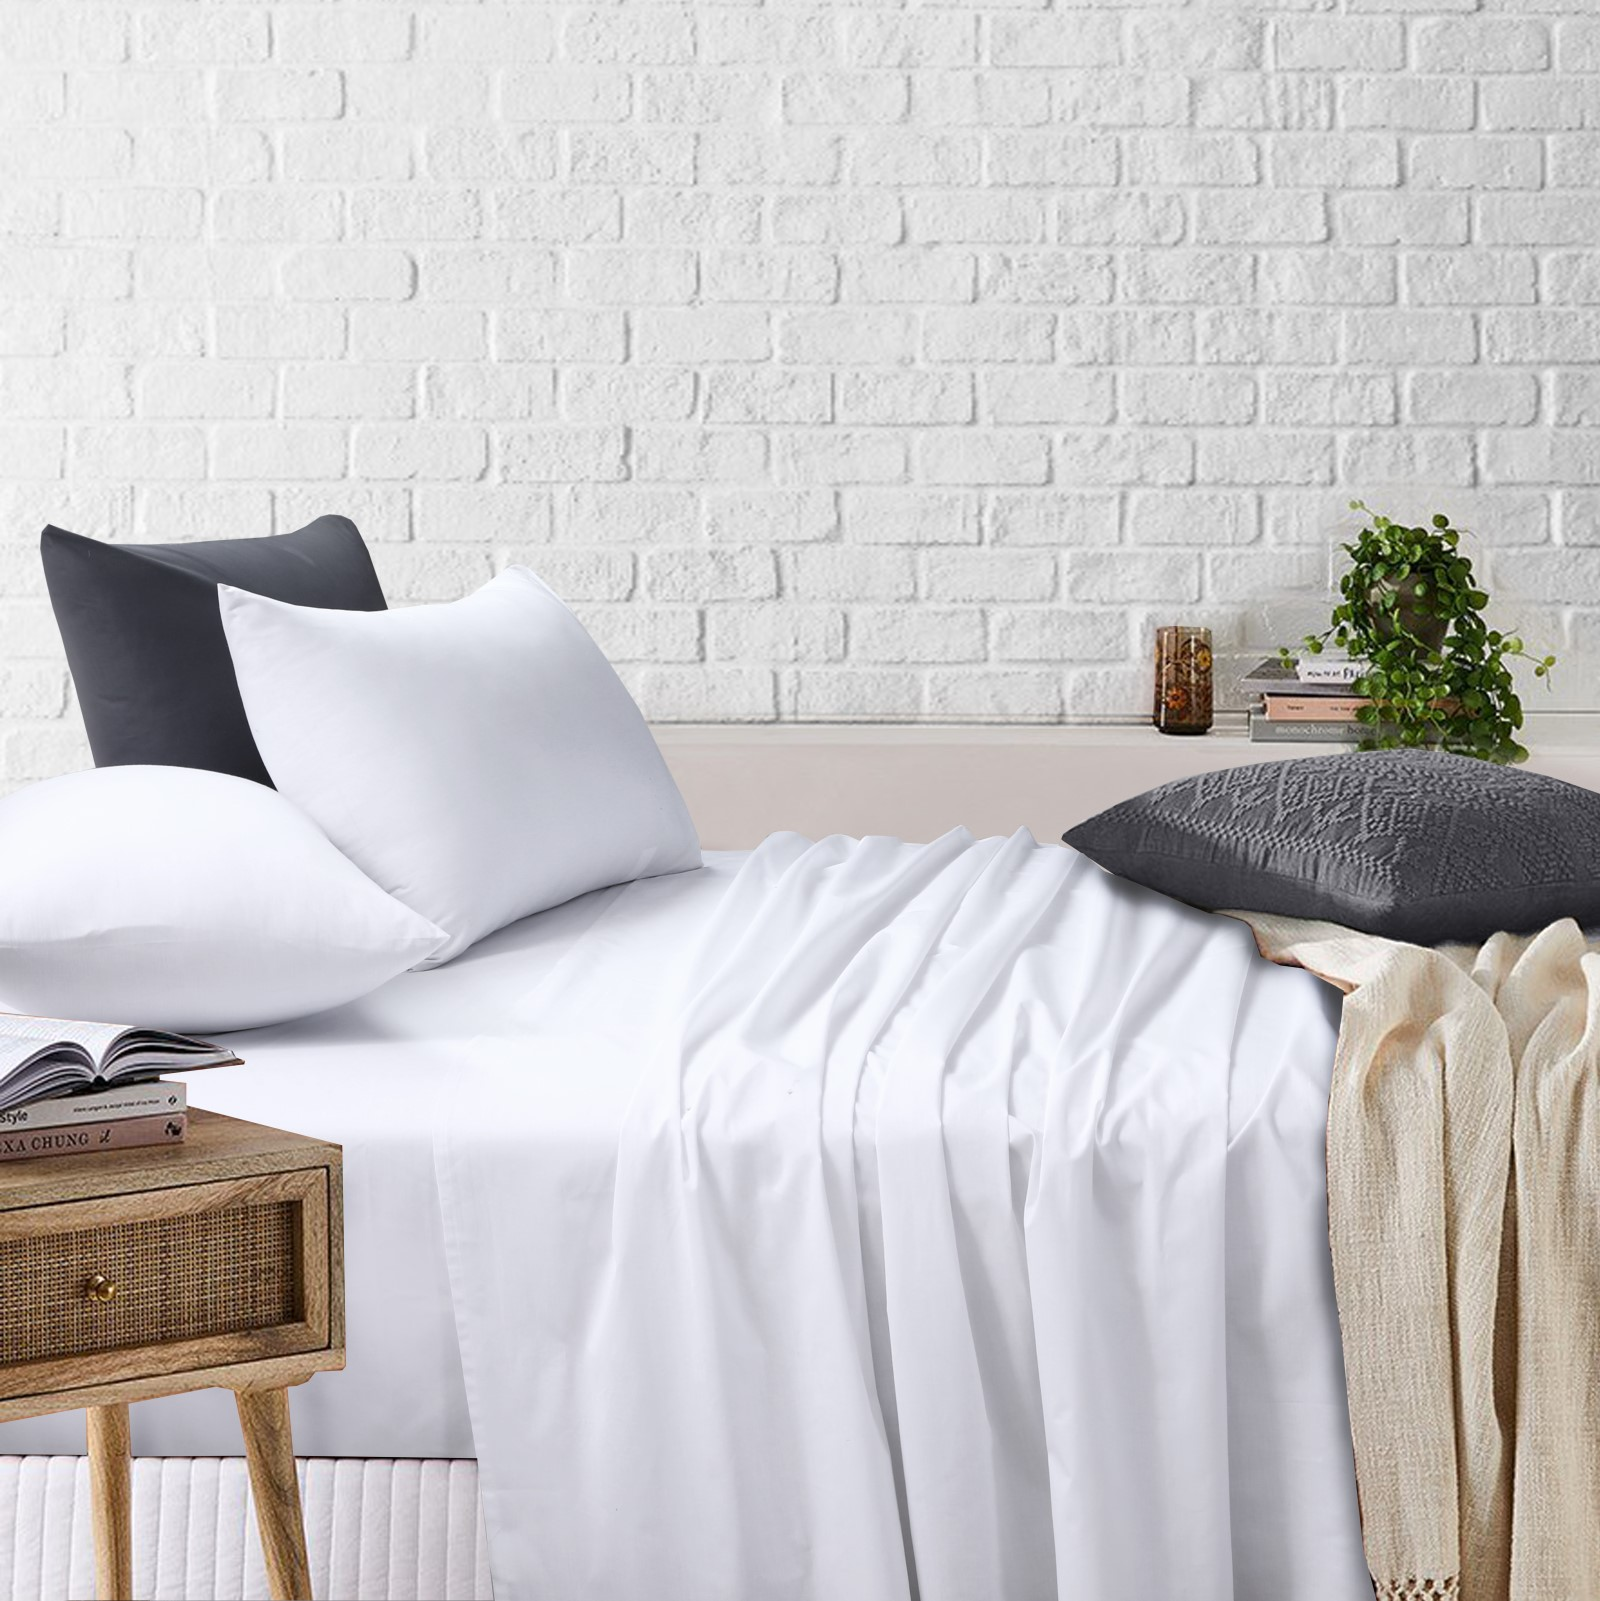 White Bedsheets Set Flat And Fitted Sheets With Pillowcases Amsons Design